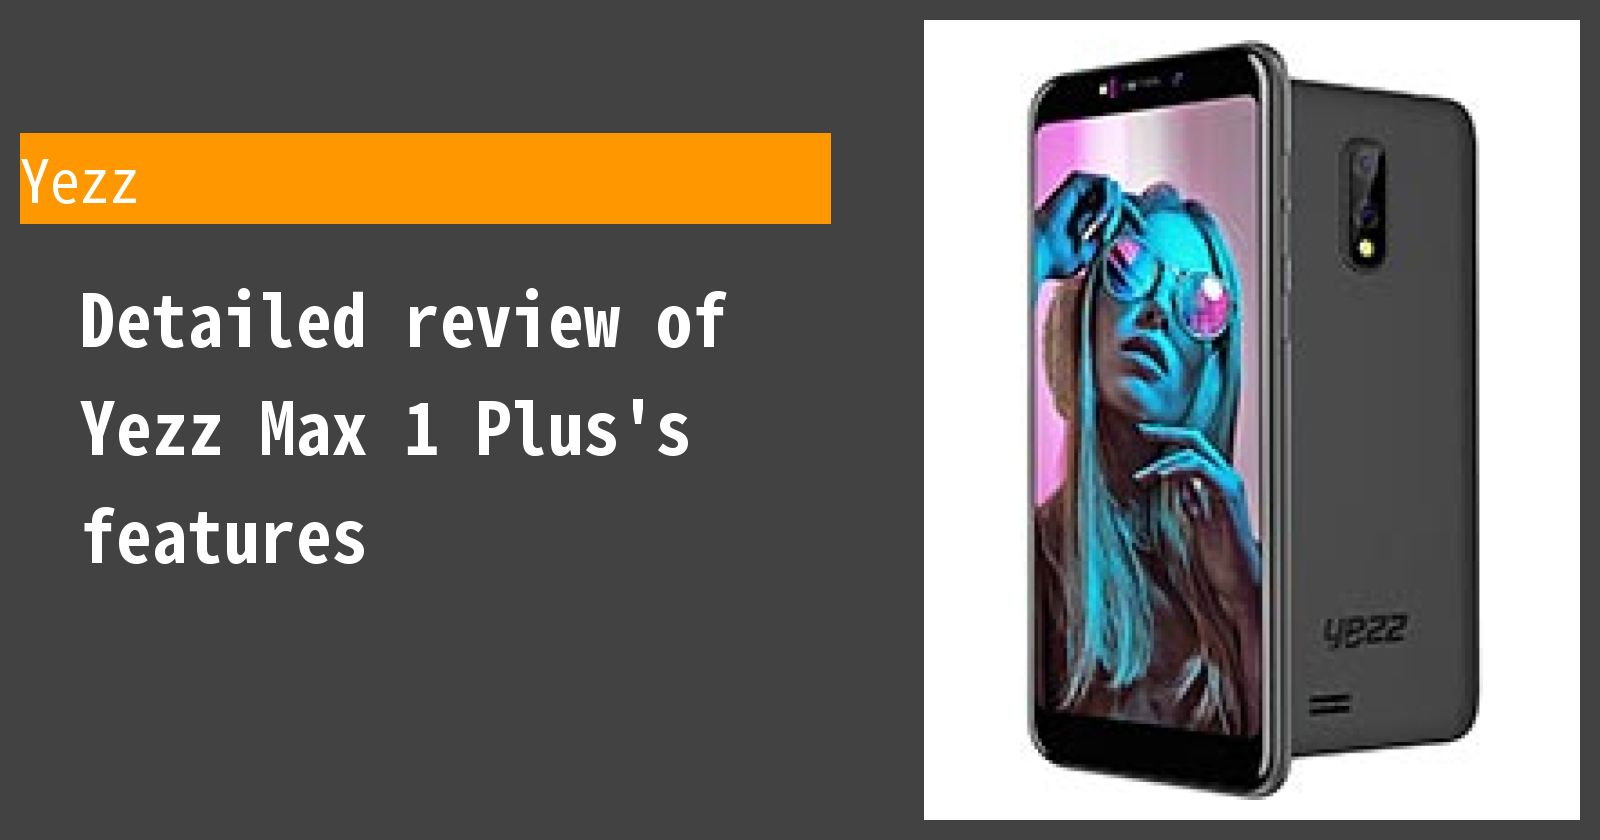 Detailed review of Yezz Max 1 Plus's features